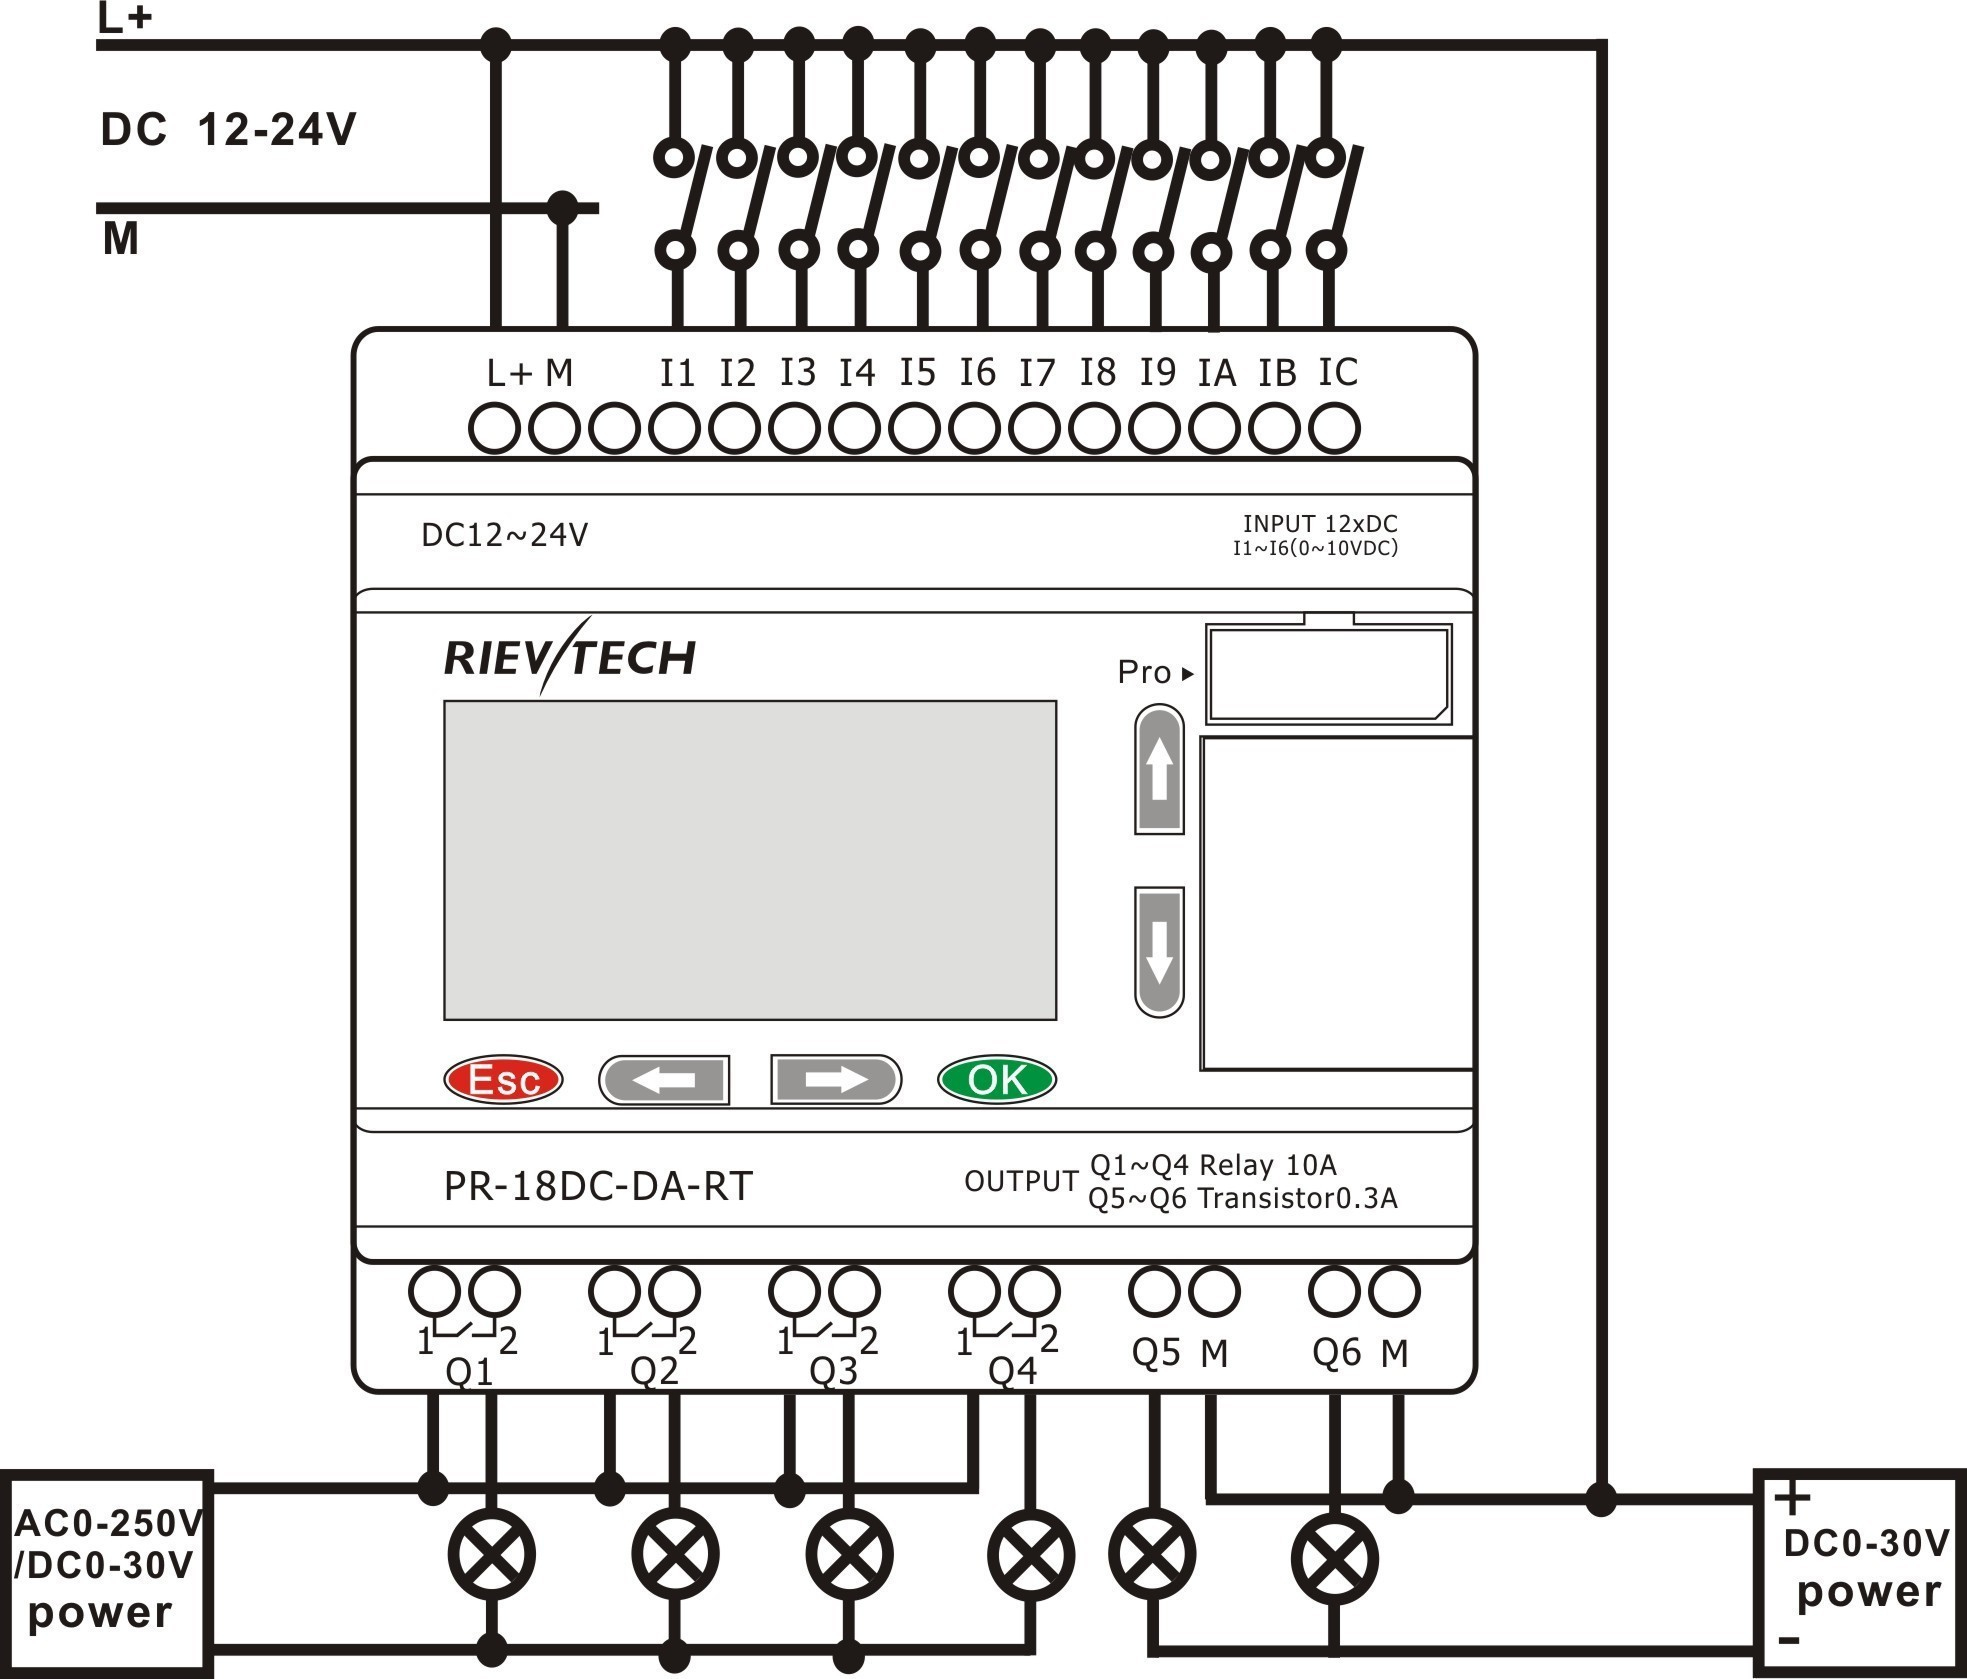 omron plc programming cable wiring diagram Download-Wiring Diagram Plc Omron Refrence Gambar Wiring Diagram Ac Inspirationa Omron Plc Wiring Diagram Omron 20-c